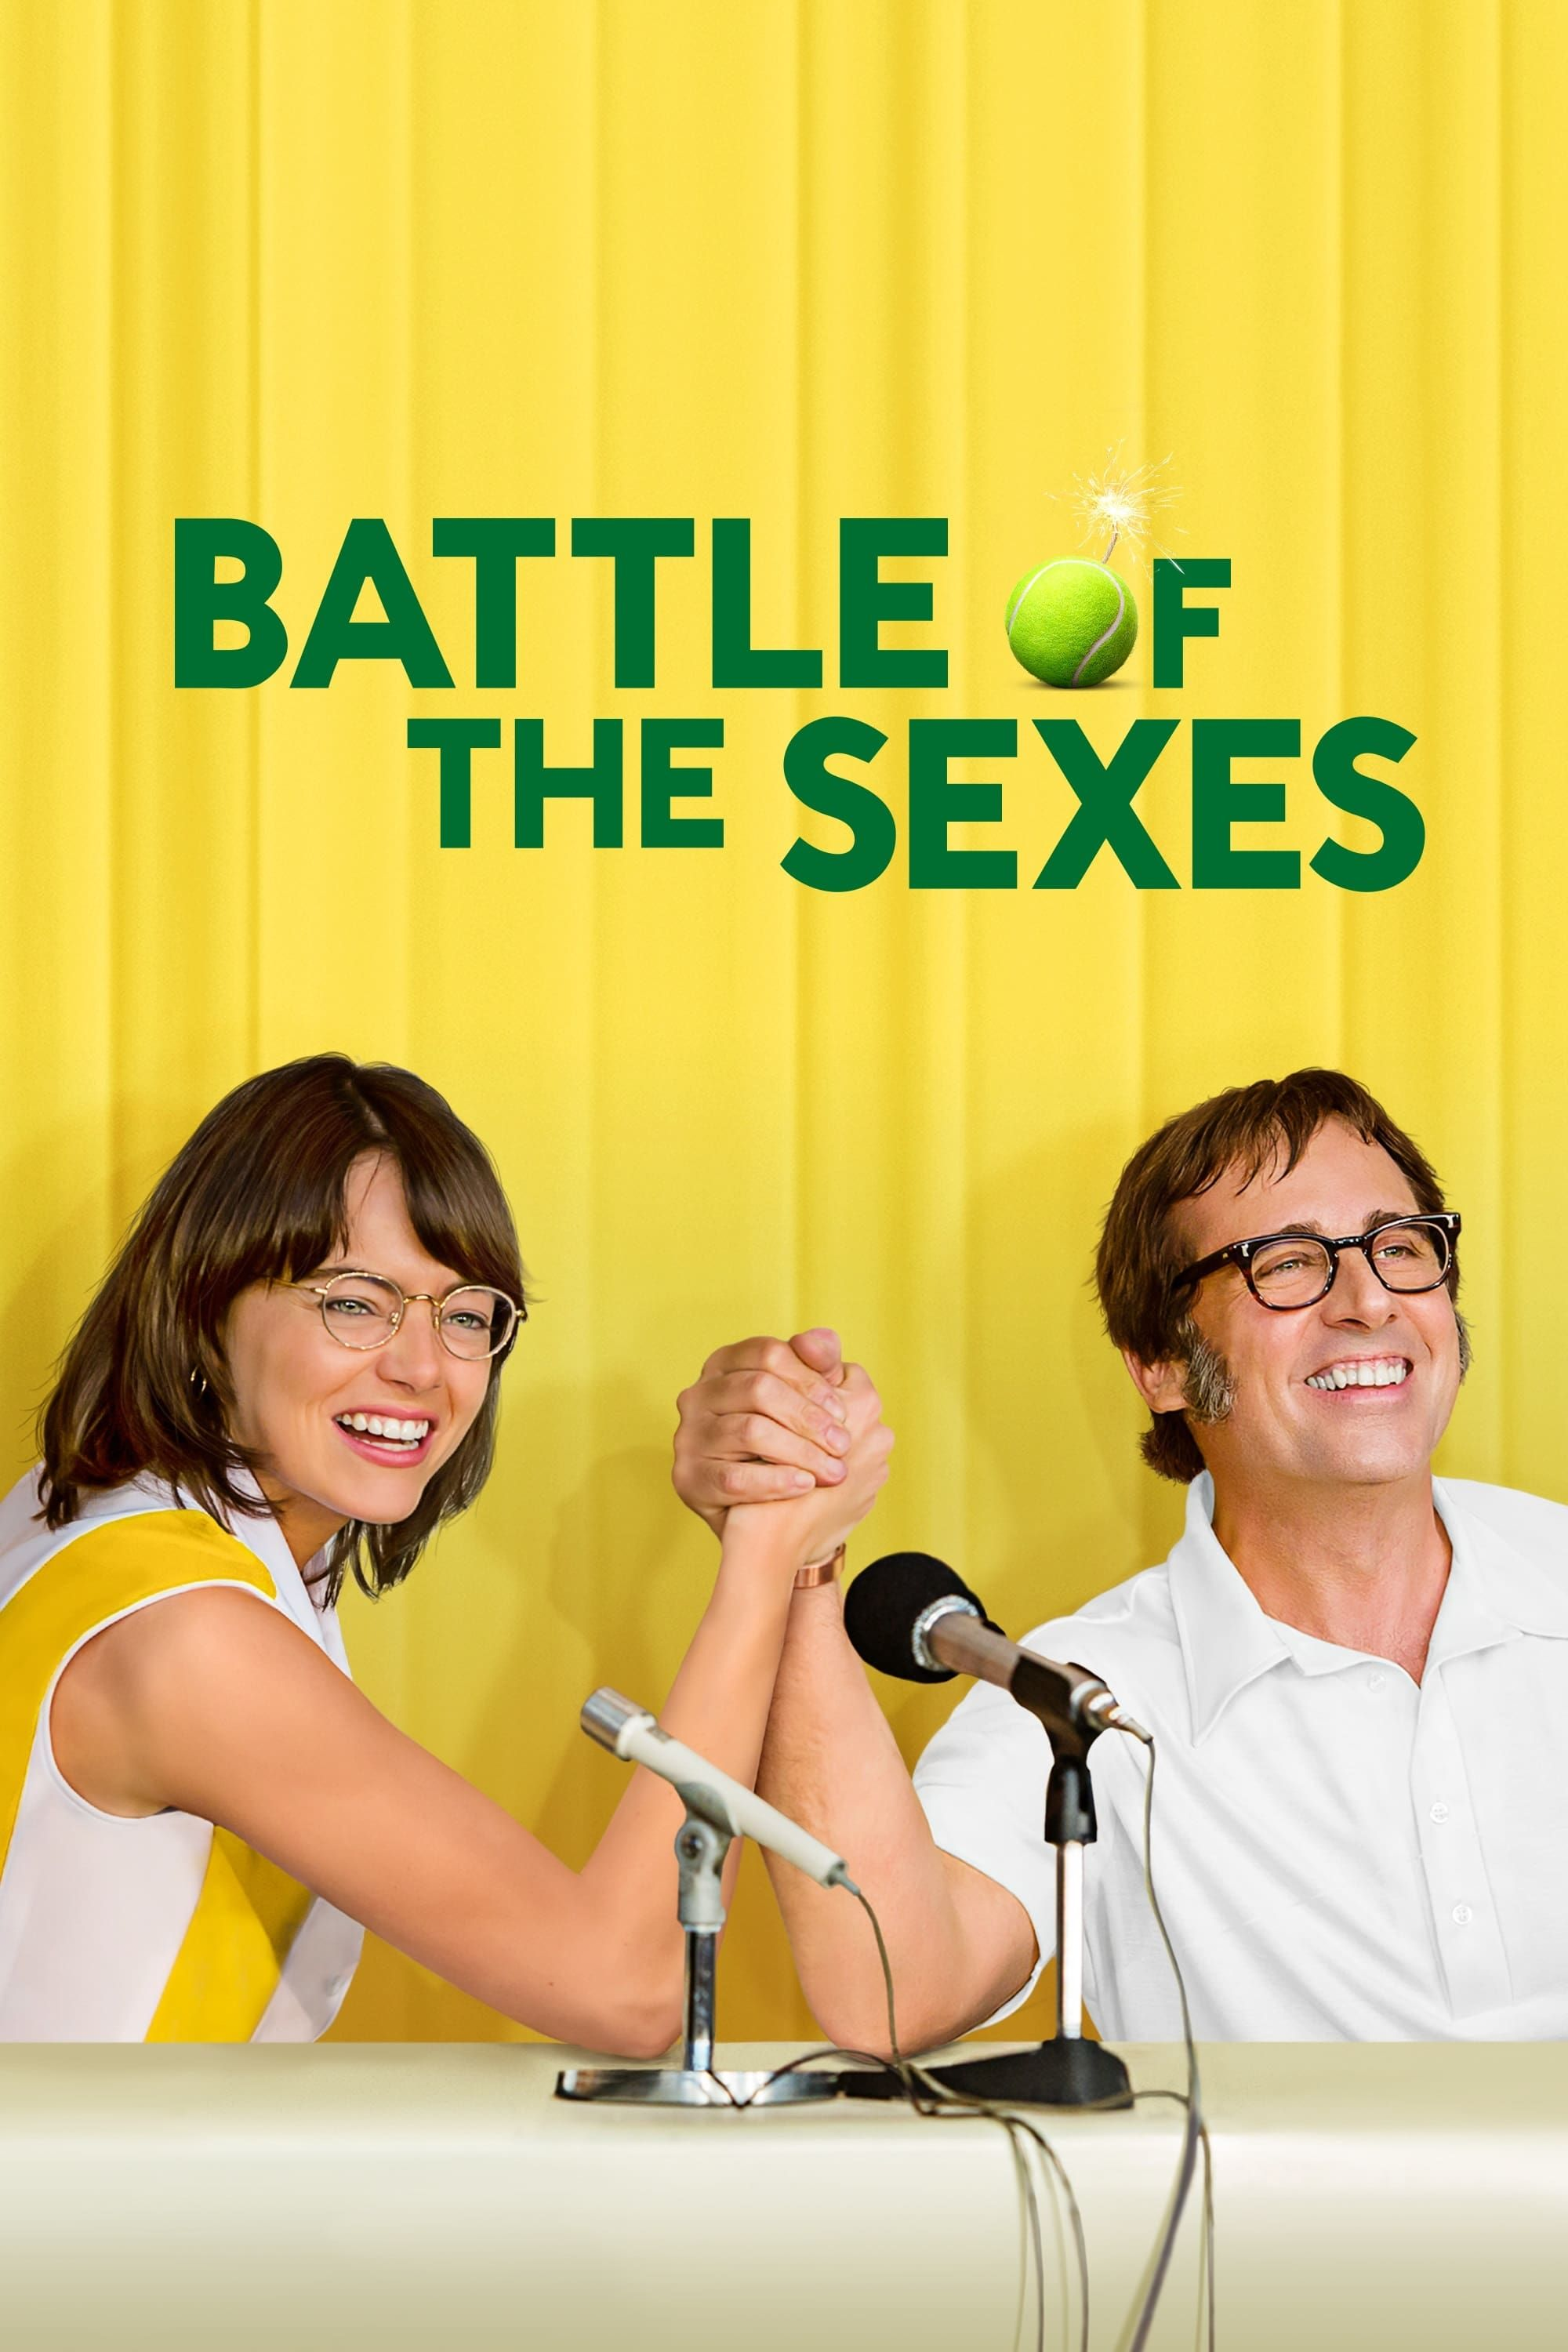 battle between the sexes essay This battle of the sexes shows no boundaries between the rich and poor, young or old, man or sional essay writers my custom essay order essay written canterbury tales essay - wife of bath and the battle of the sexes while free essays can be traced by turnitin (plagiarism detection program),our.